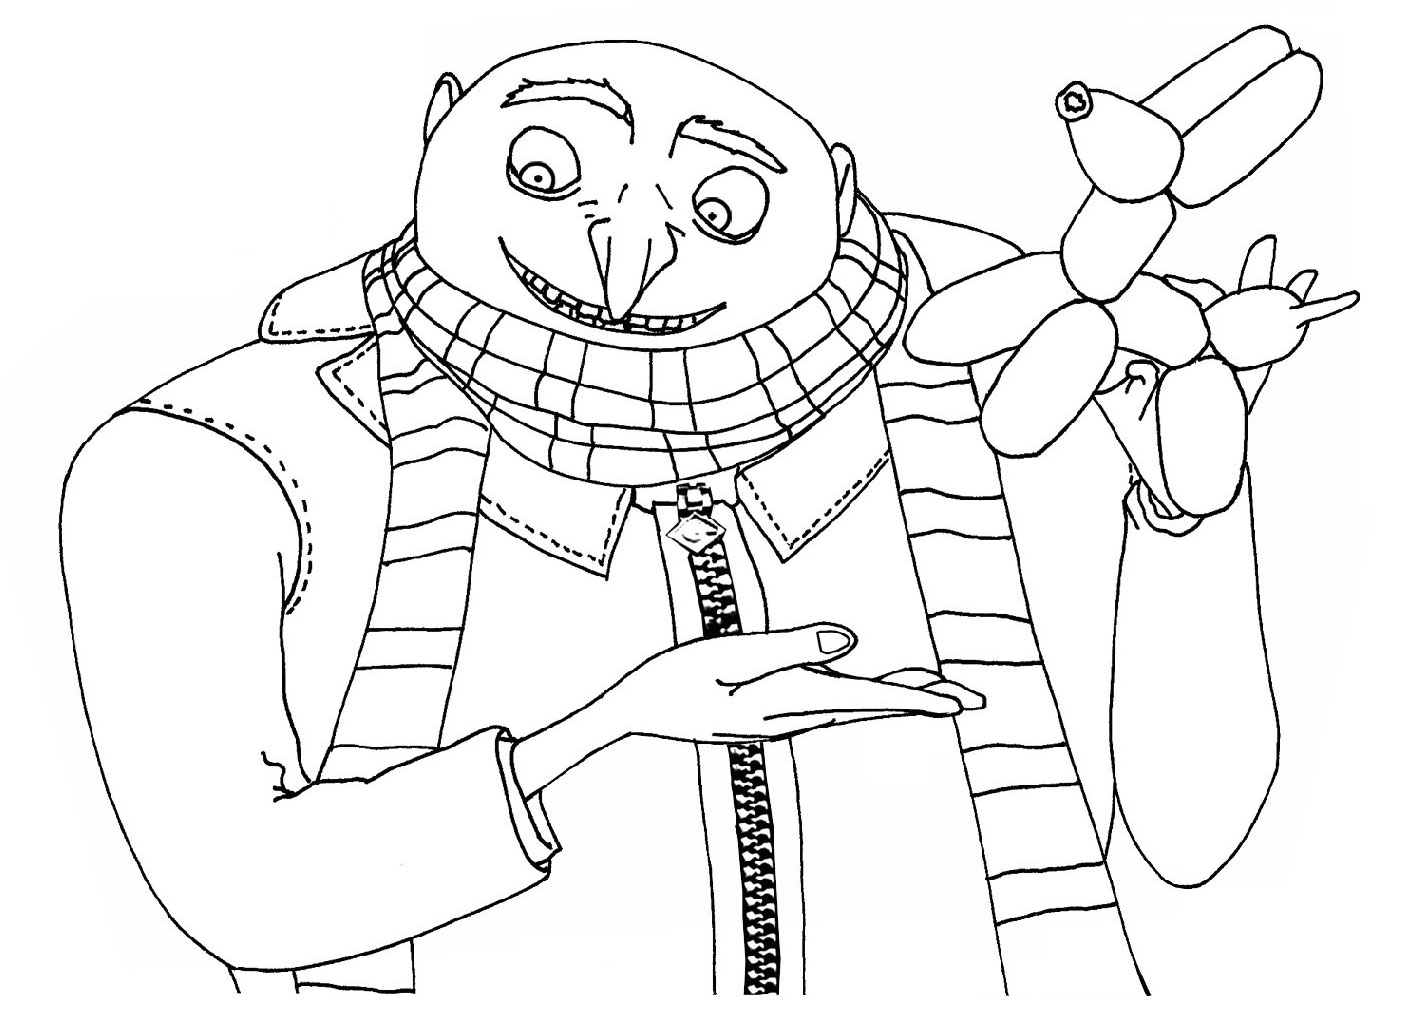 despicable me minions coloring pages printable despicable me coloring pages for kids cool2bkids minions coloring me pages despicable